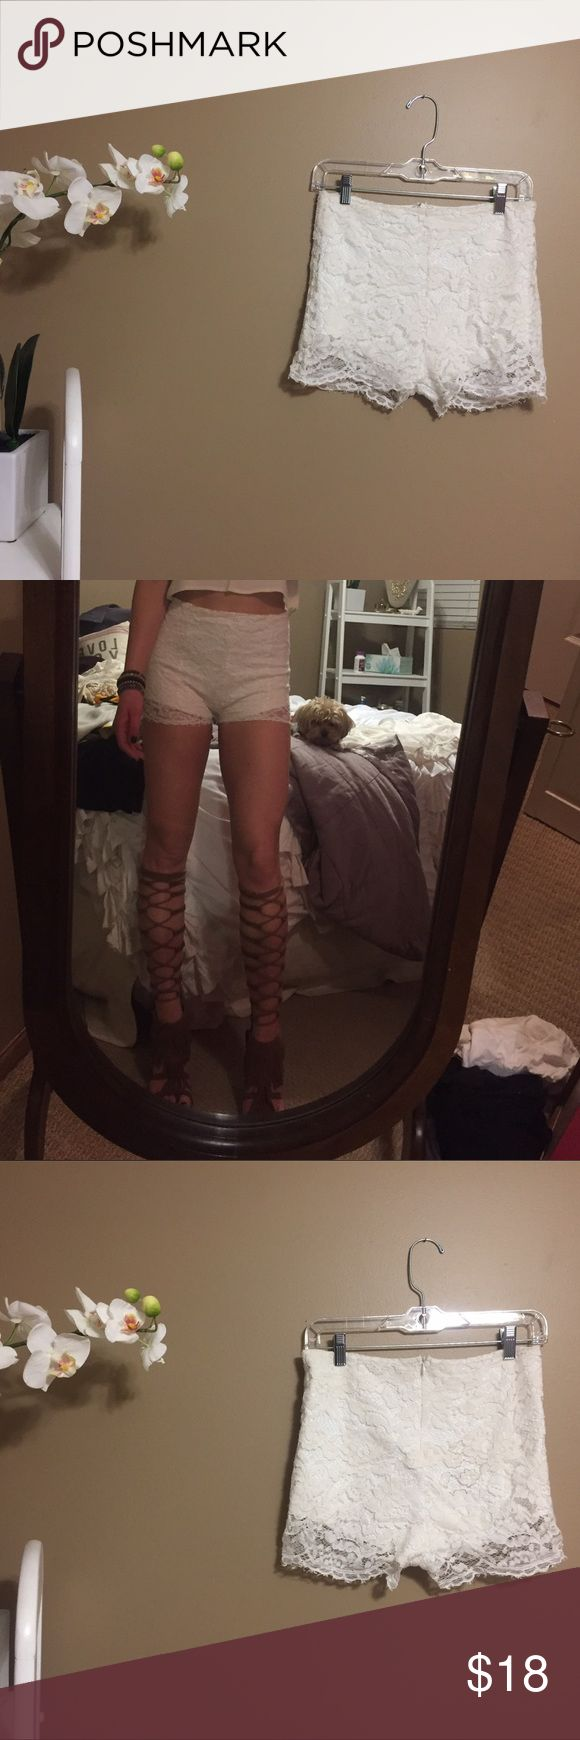 Lace short shorts Off white/cream lace shorts | small stain on back cheek | high waist Lush Shorts